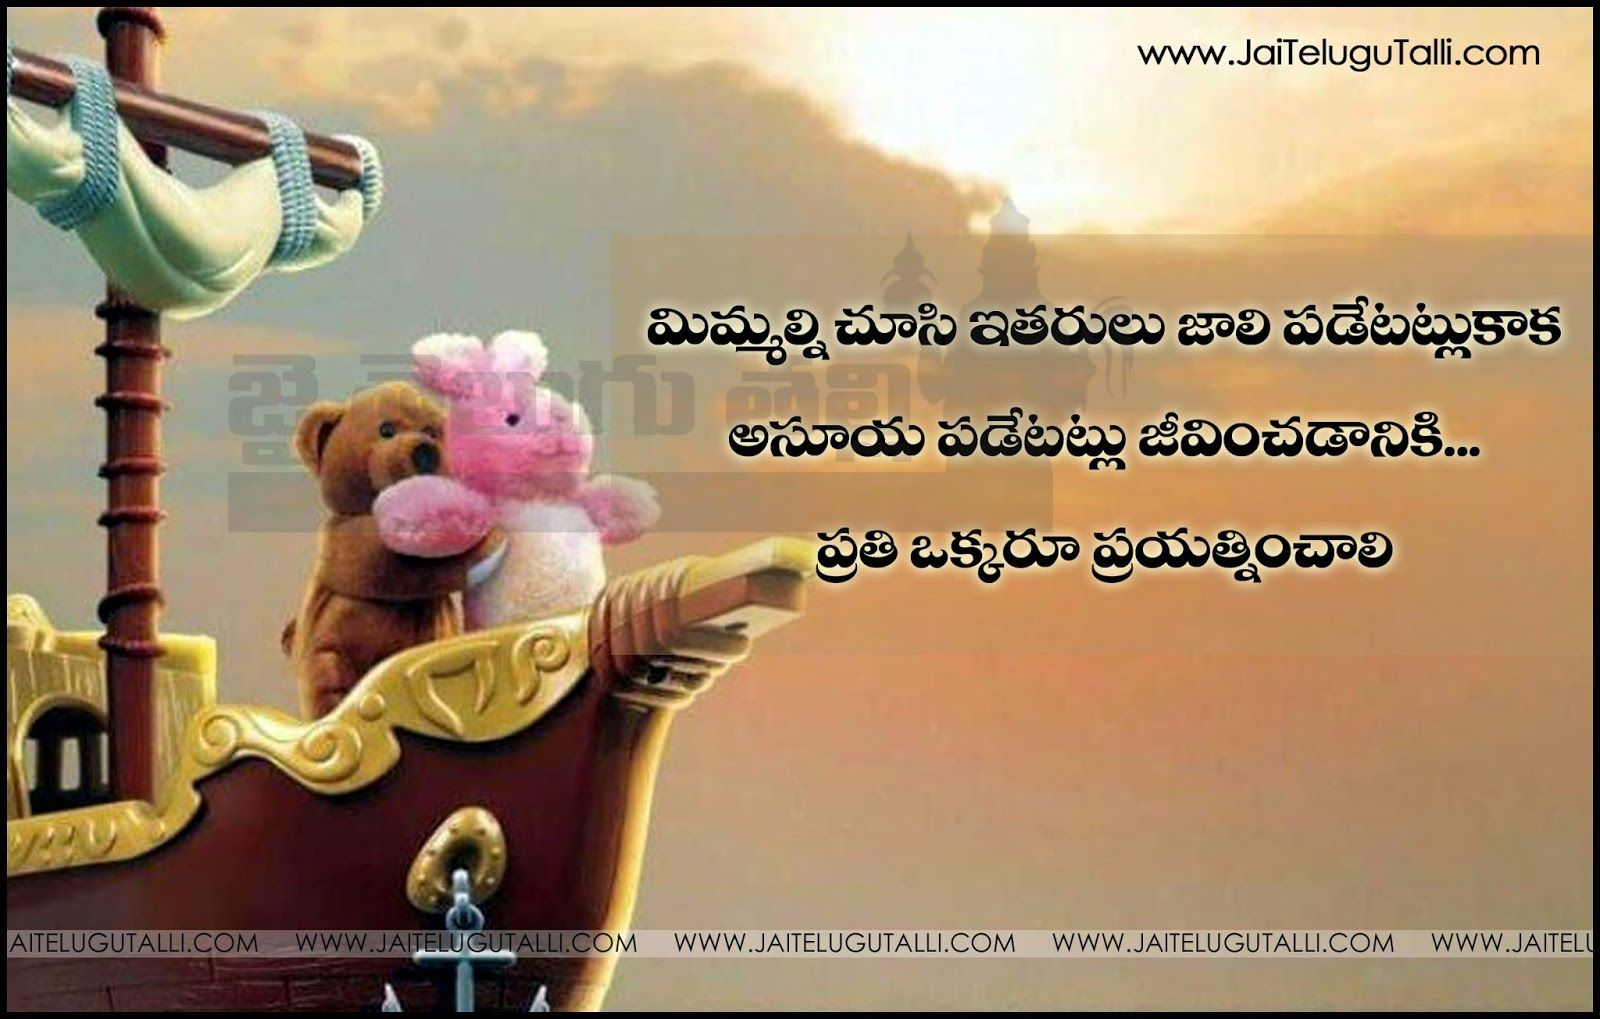 Inspirational Quotes In Telugu Life Motivational Thoughts And Sayings Images Jpg 1600 1019